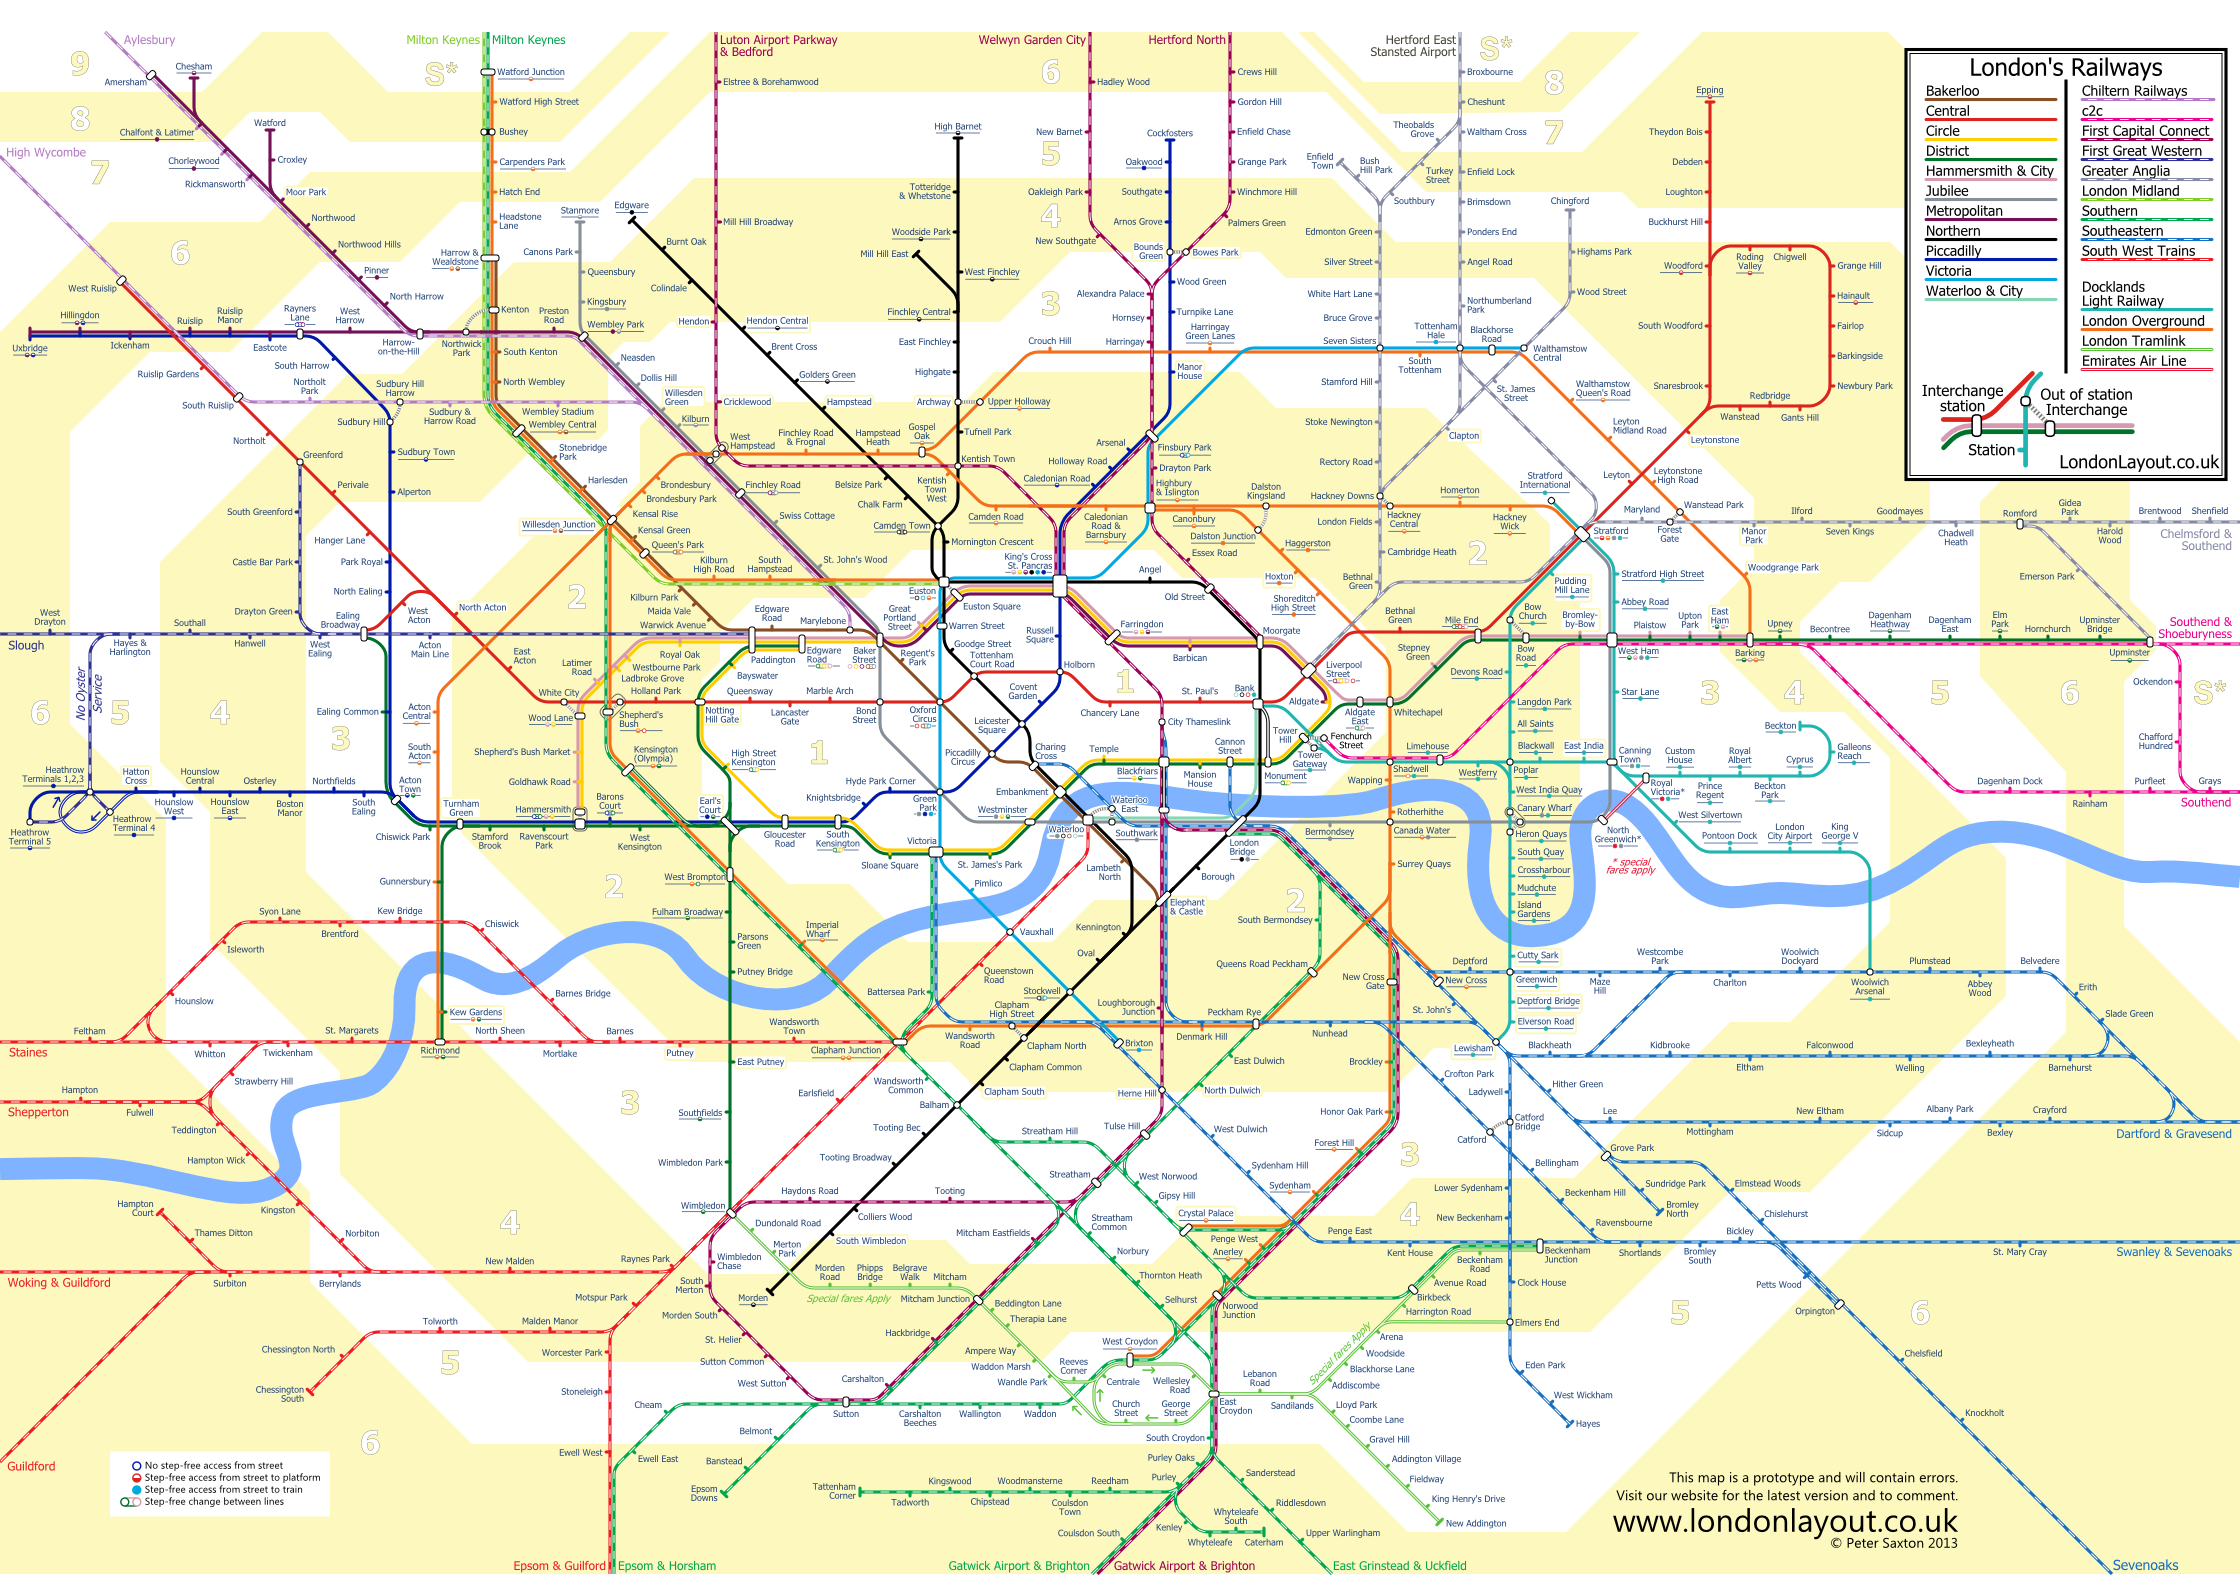 tube and rail map showing travel zones